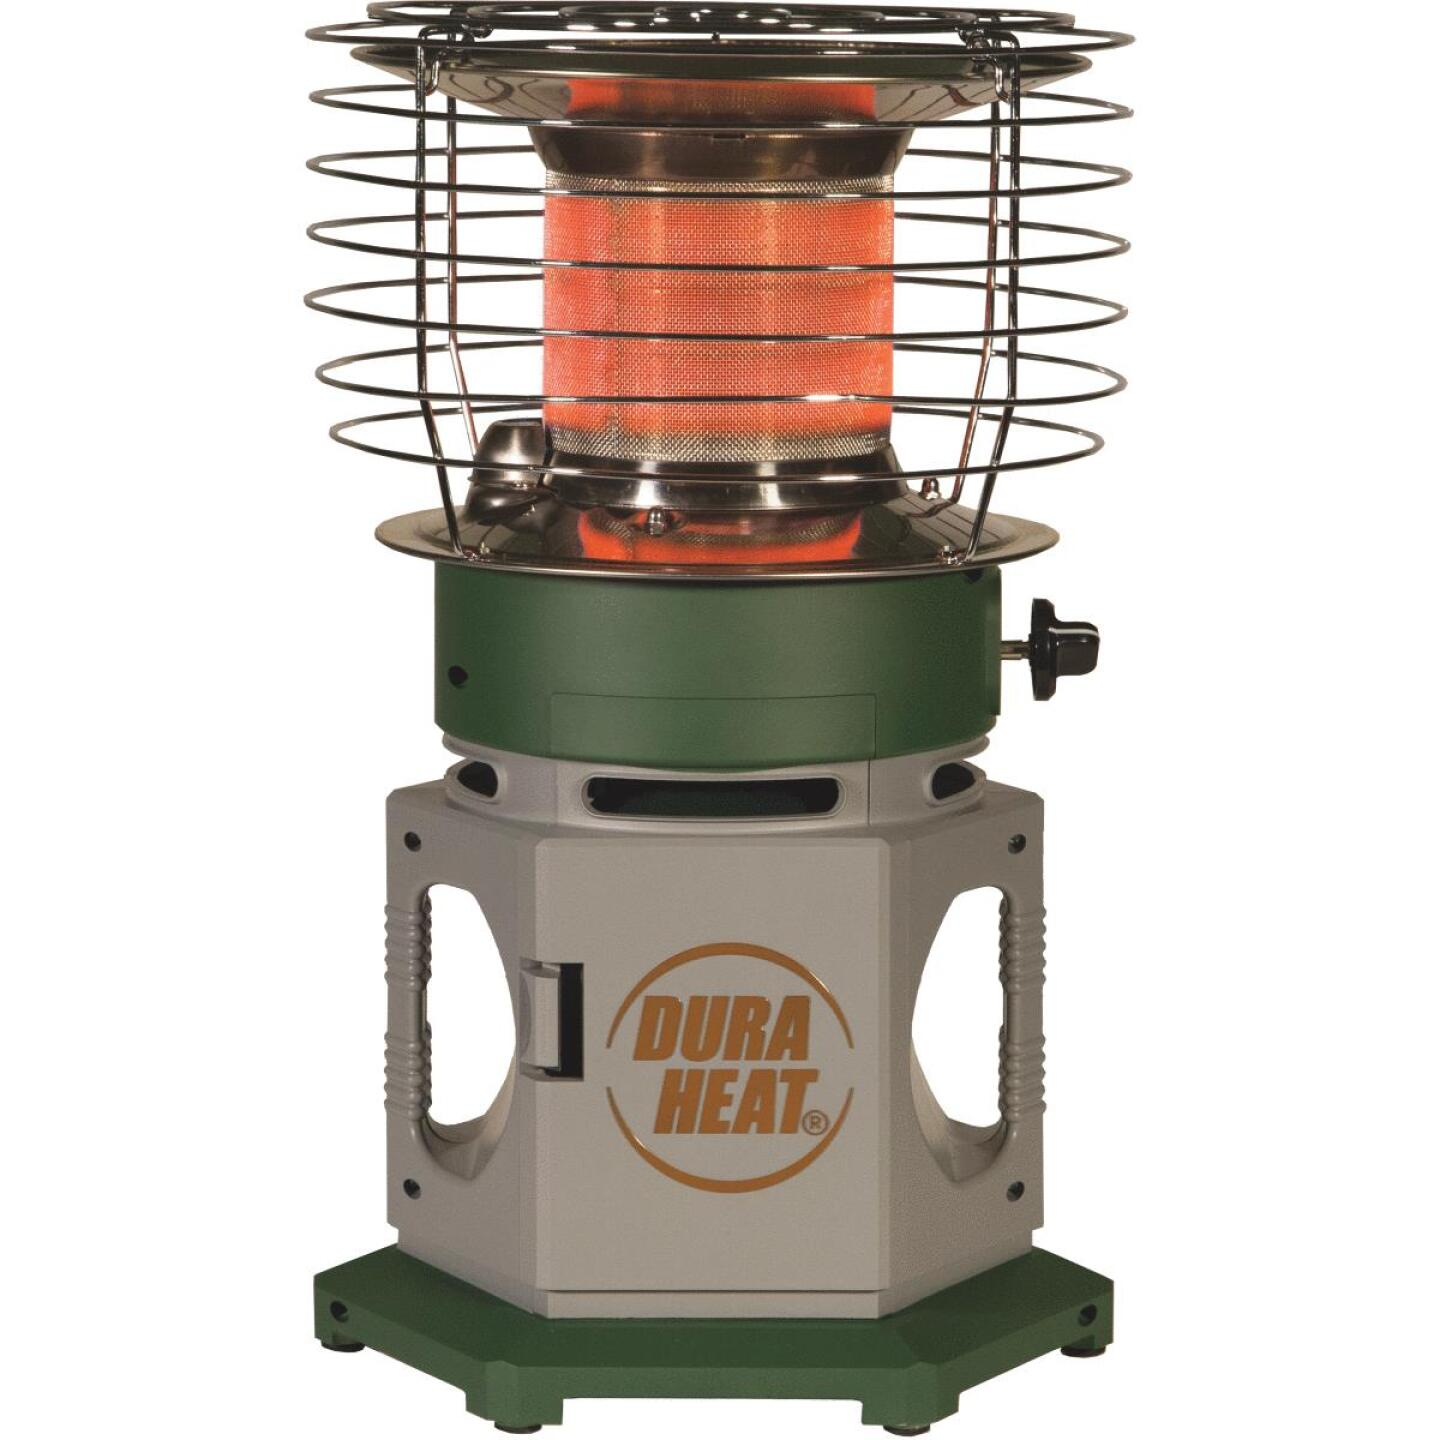 Dura Heat 18,000 BTU Radiant Double Tank 360 Degree Propane Heater Image 1